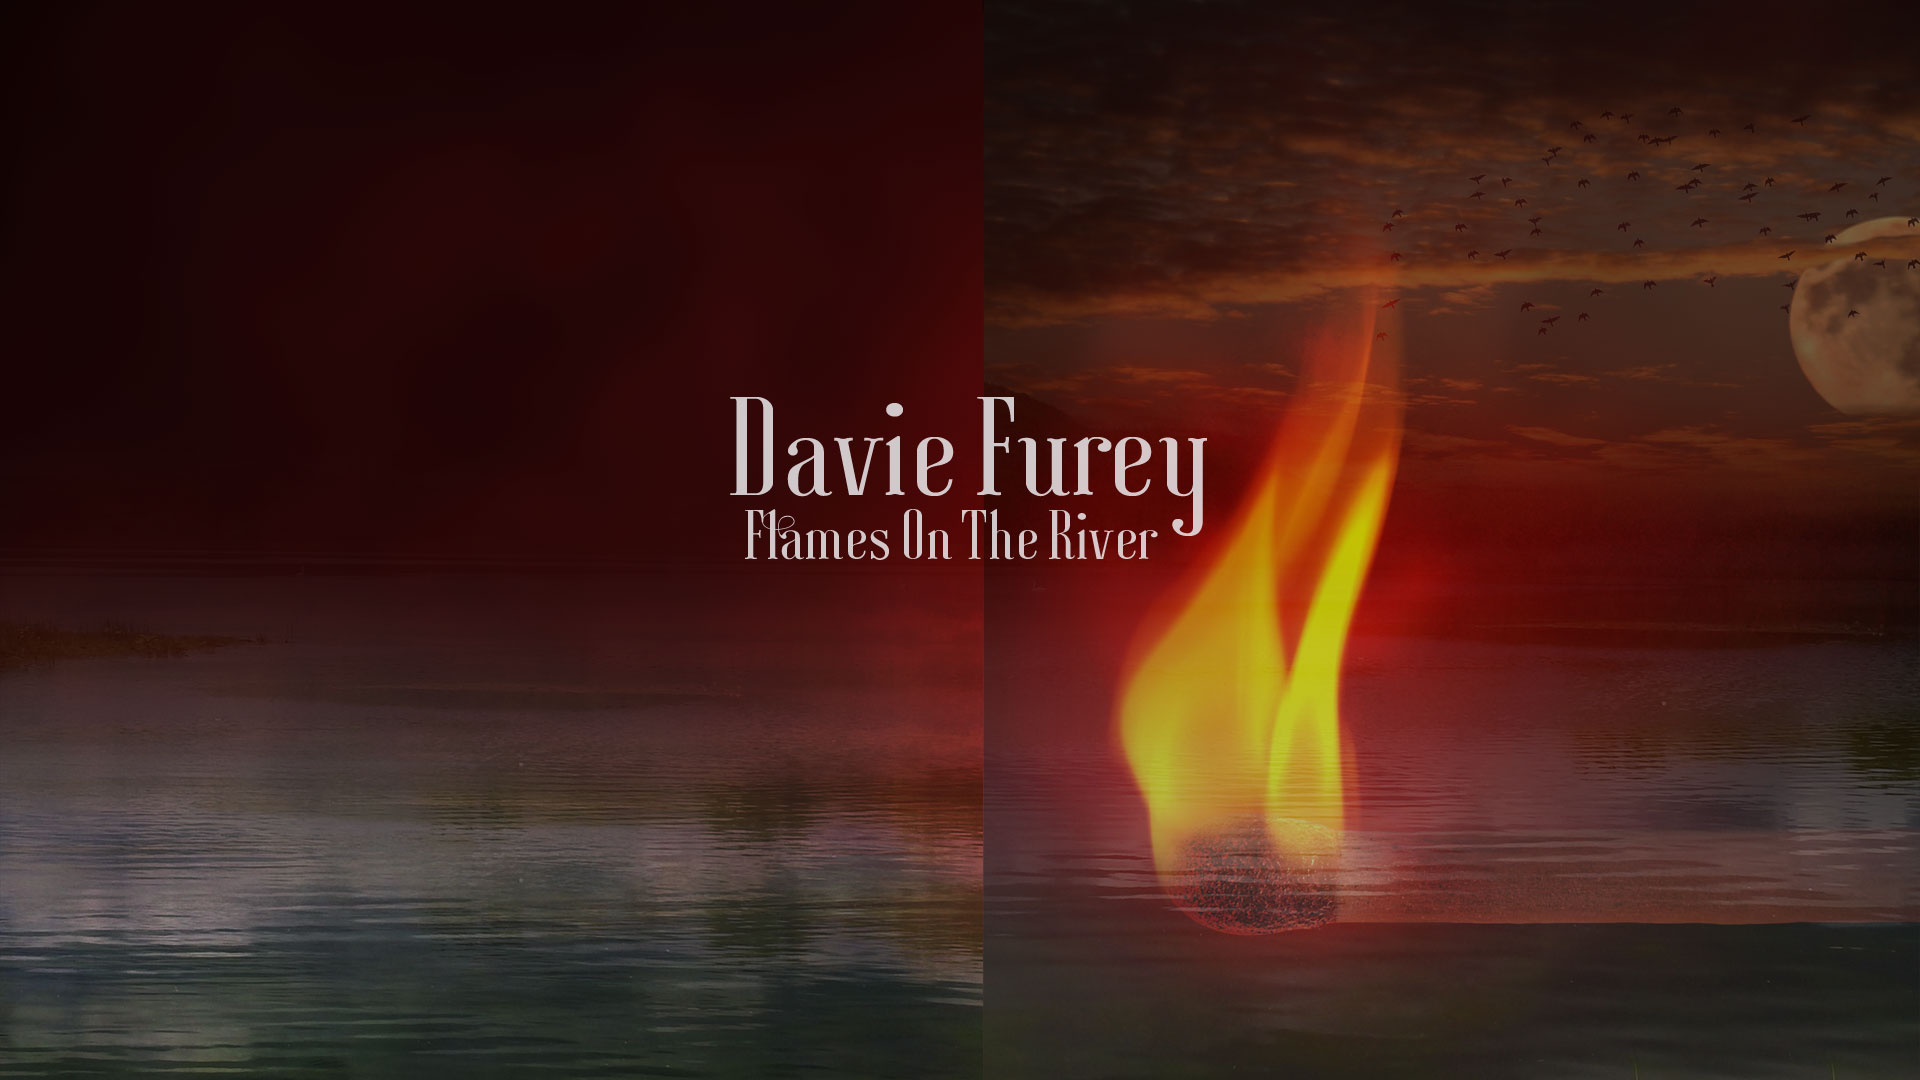 Davie Furey – 'Flames On The River' Album Design